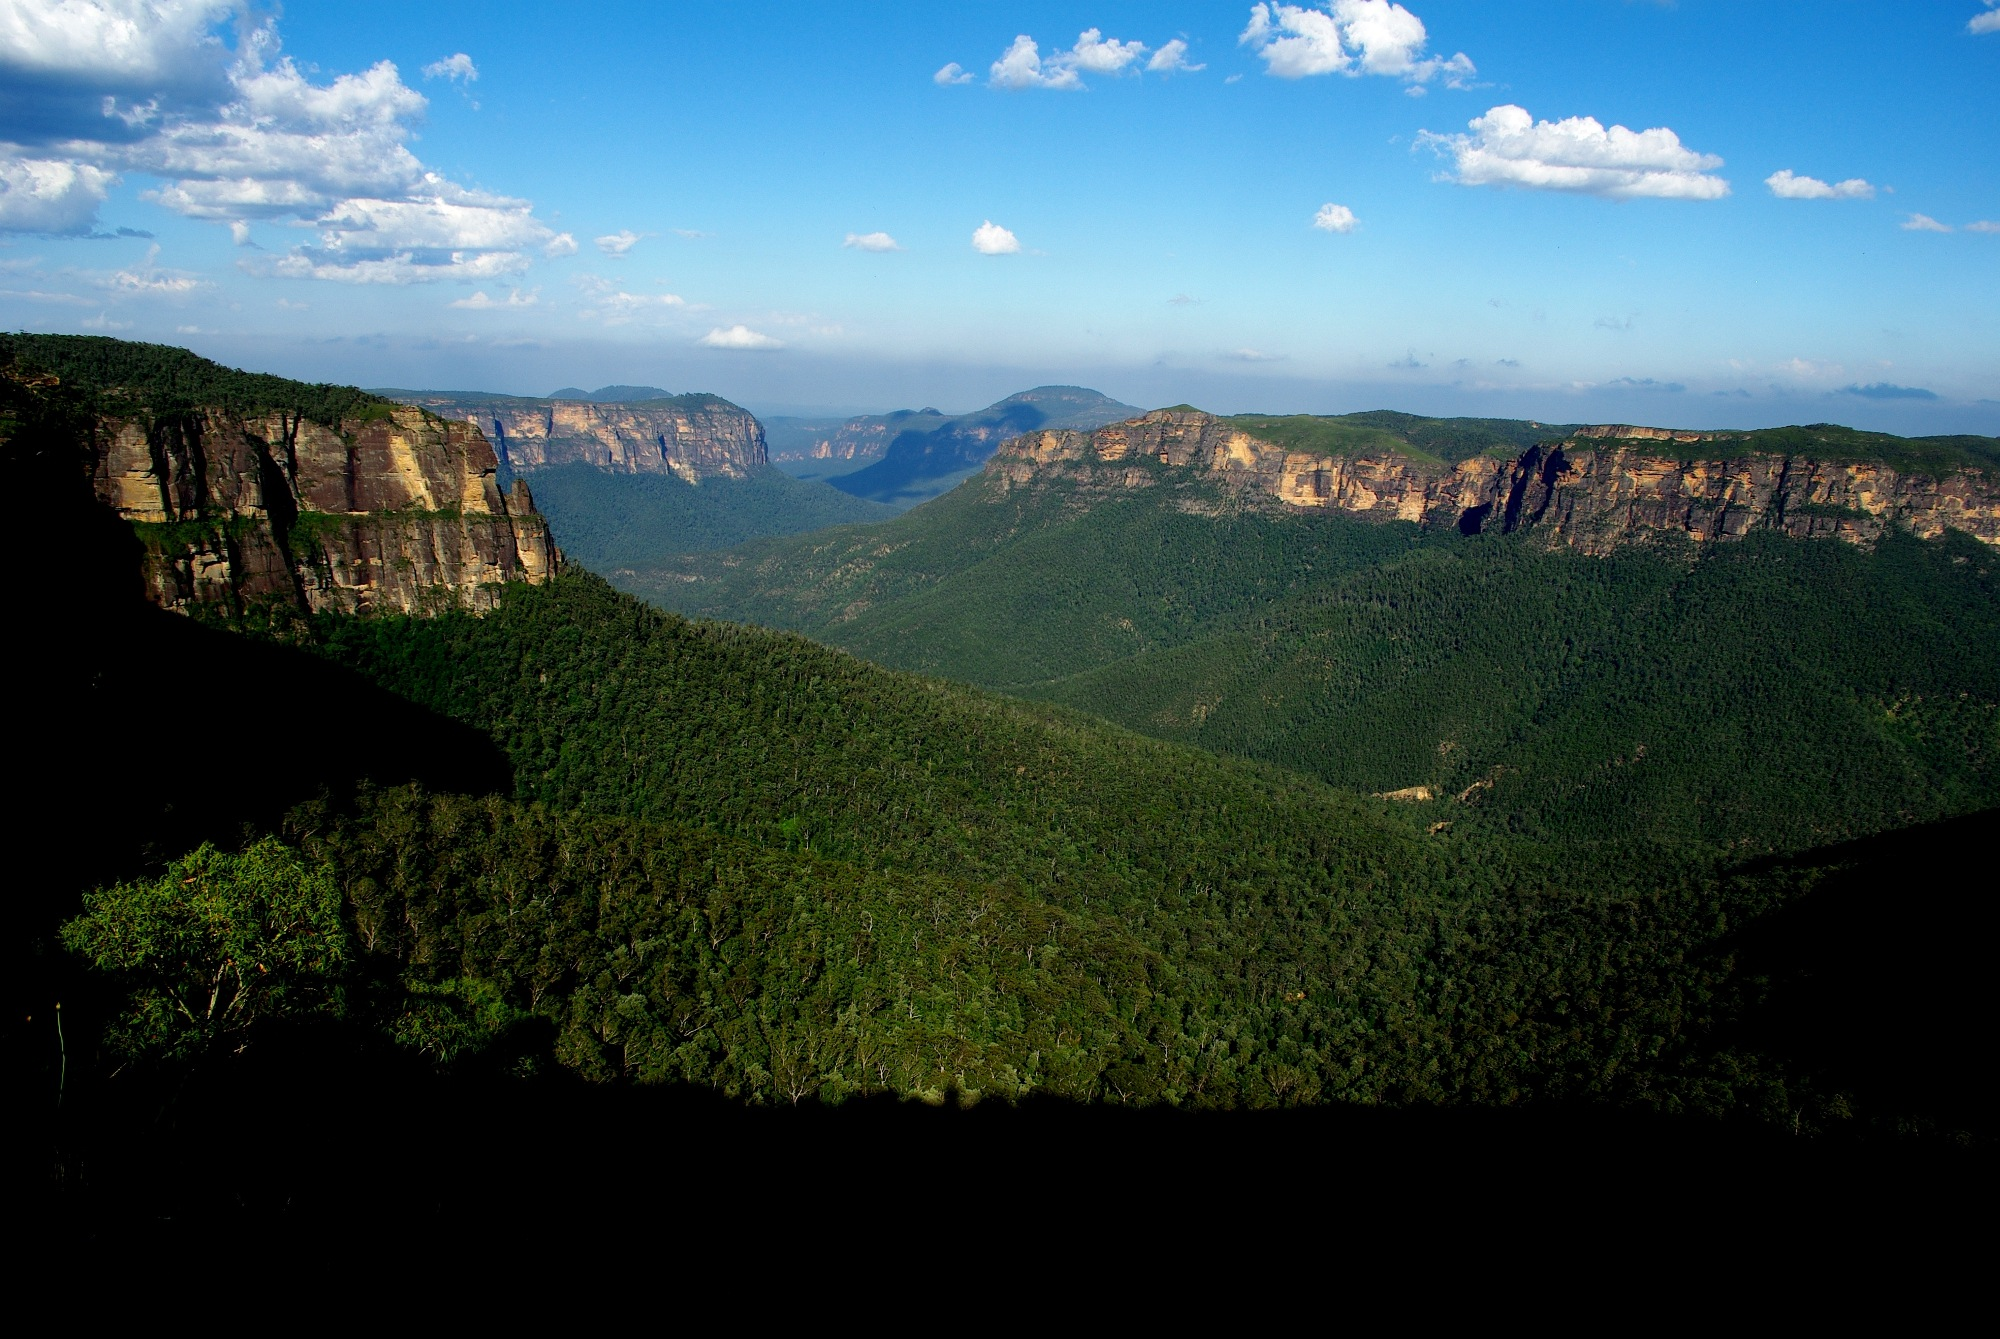 Blue Mountains views by tonycal